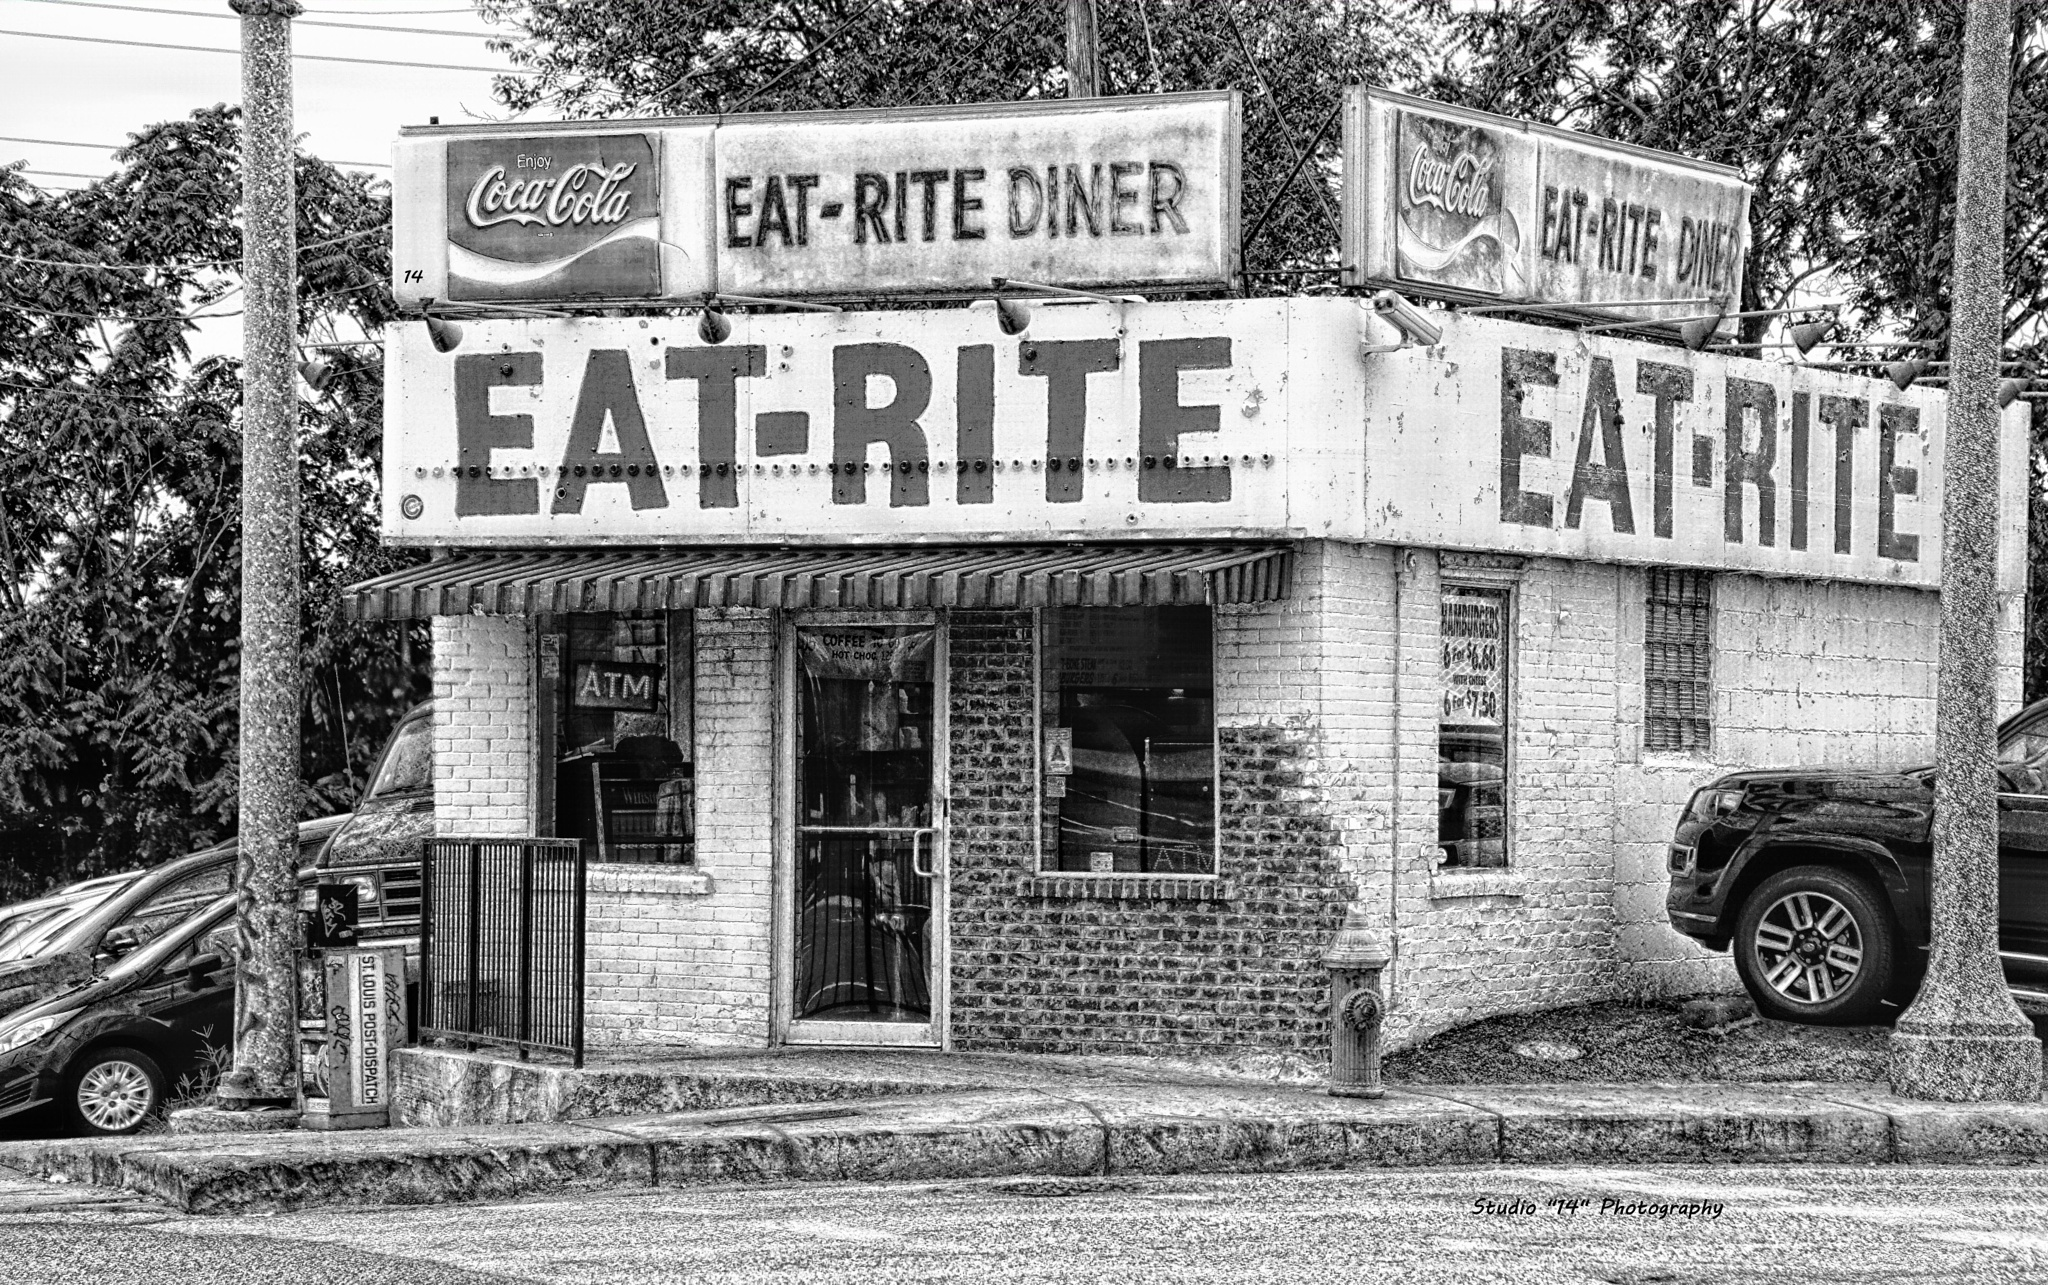 Eat-Rite Diner by Gary Cole